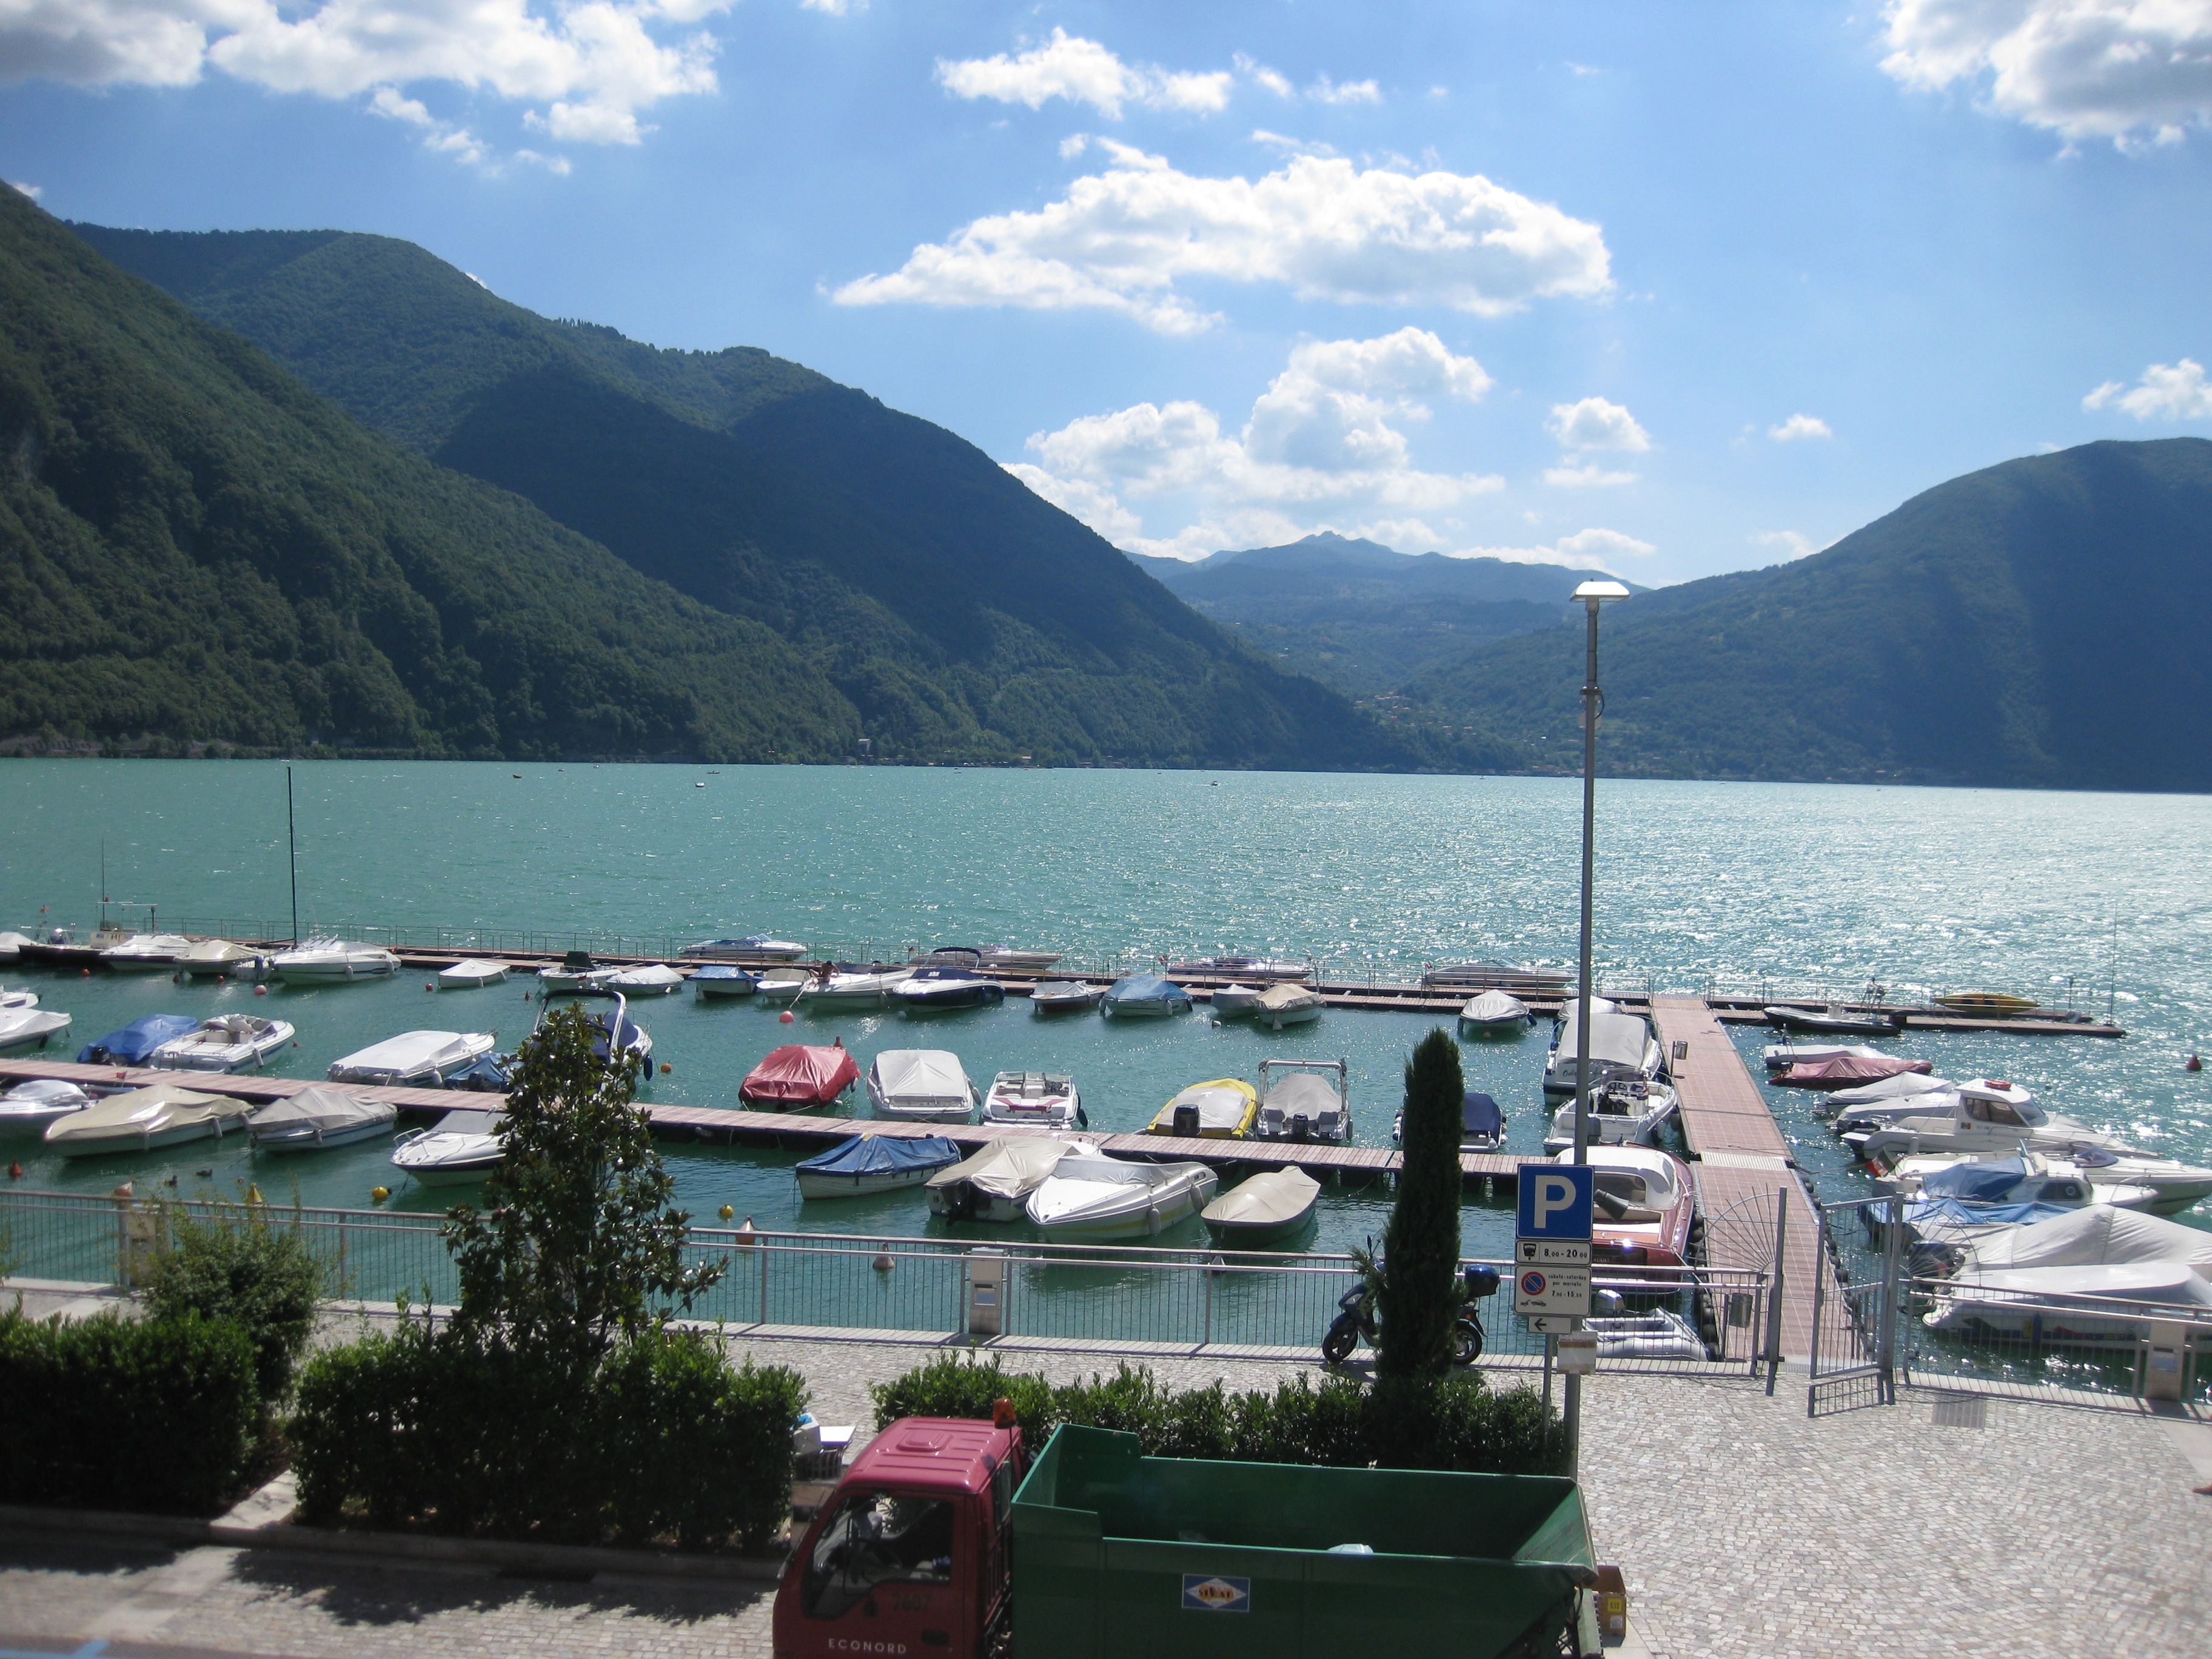 Lake_of_Lugano_from_Porlezza